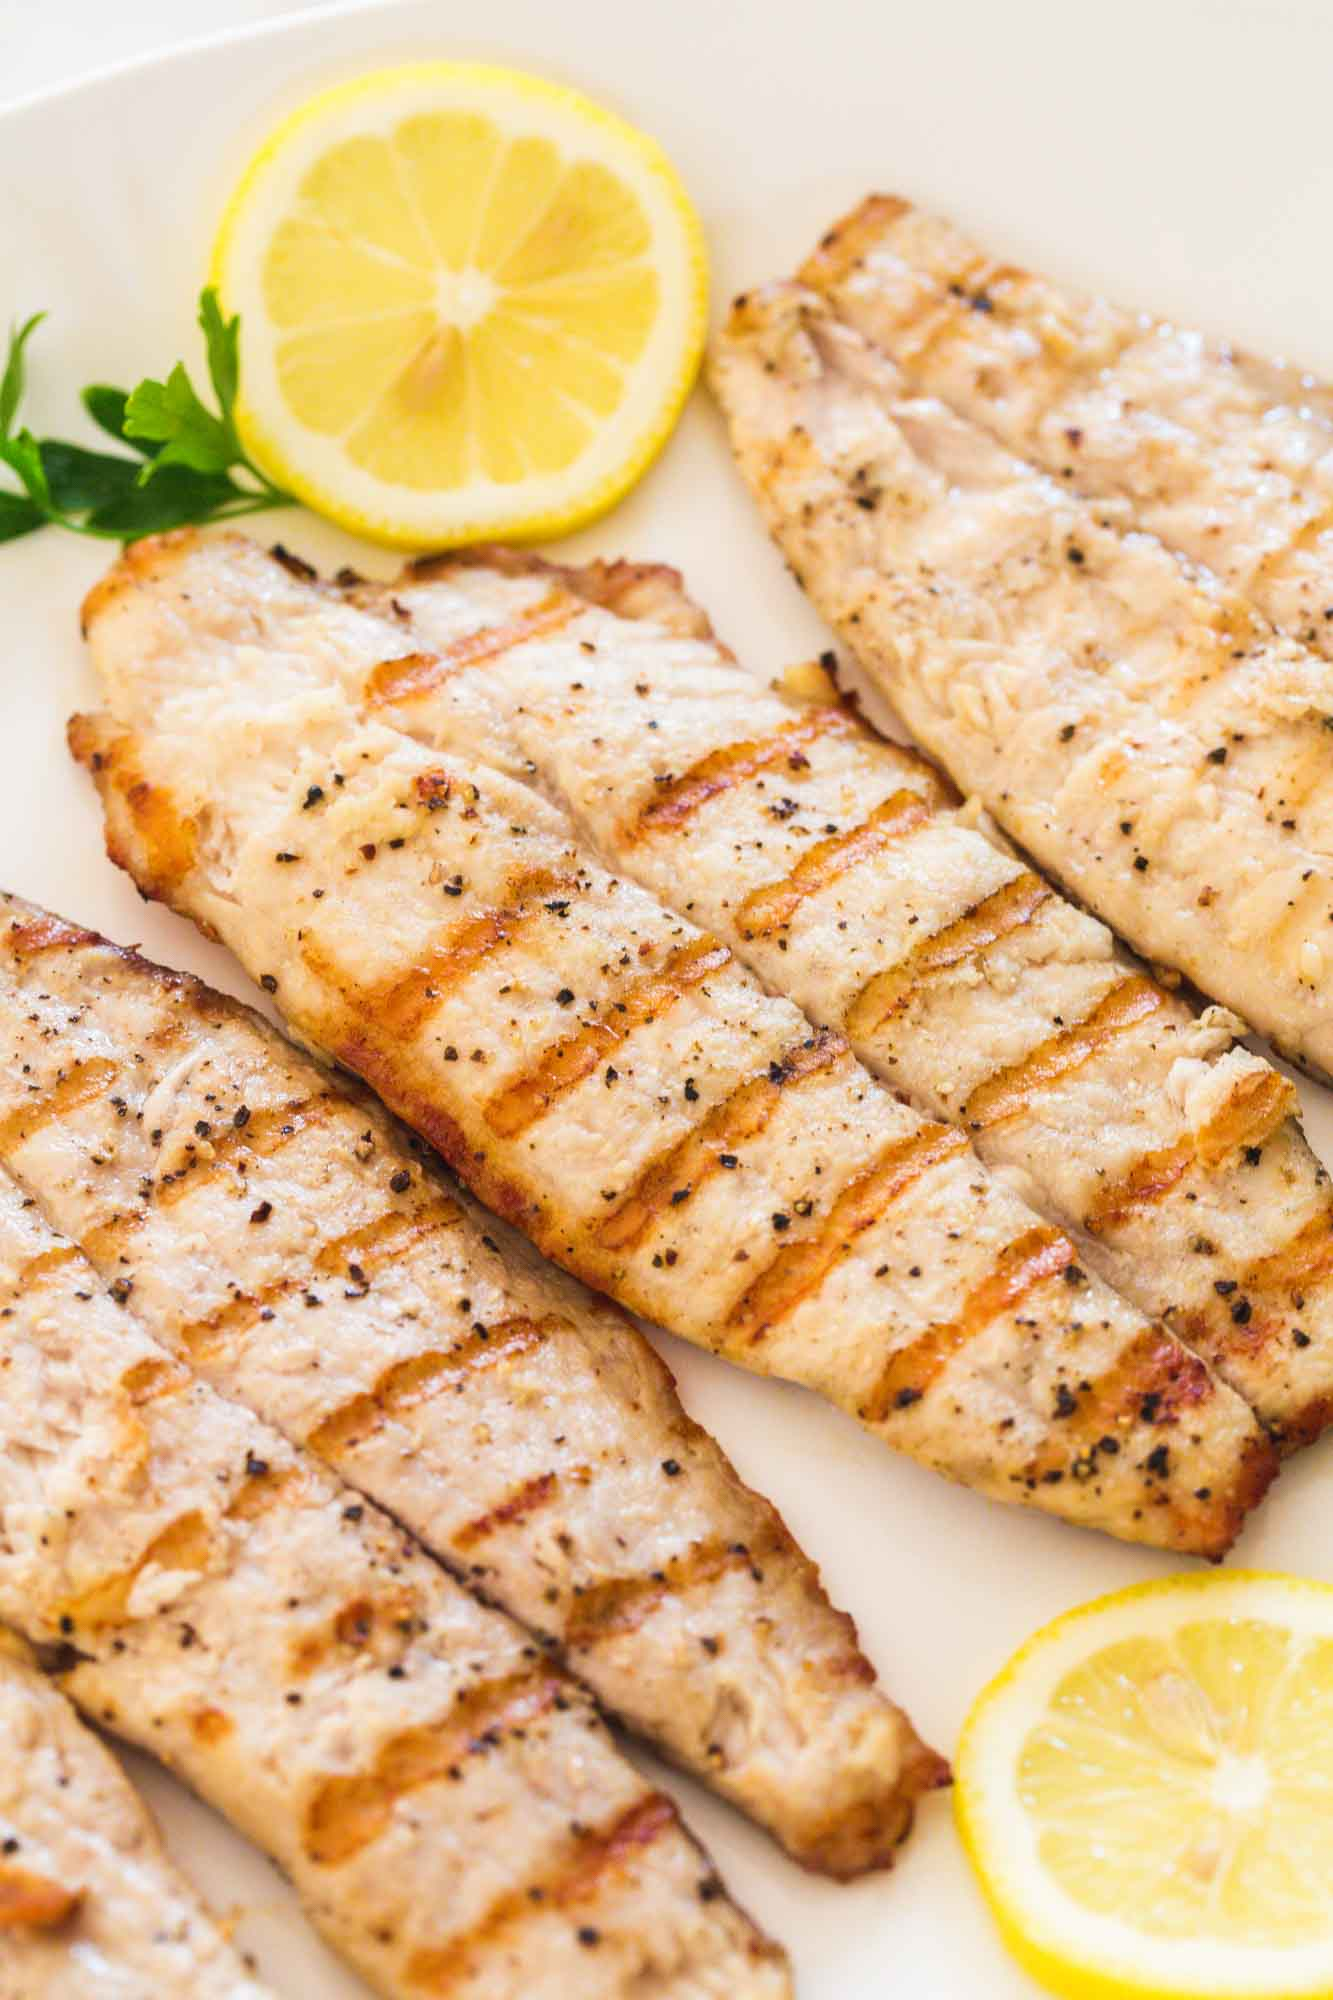 Grilled tilapia fillets served on a large white platter with fresh lemon slices and parsley